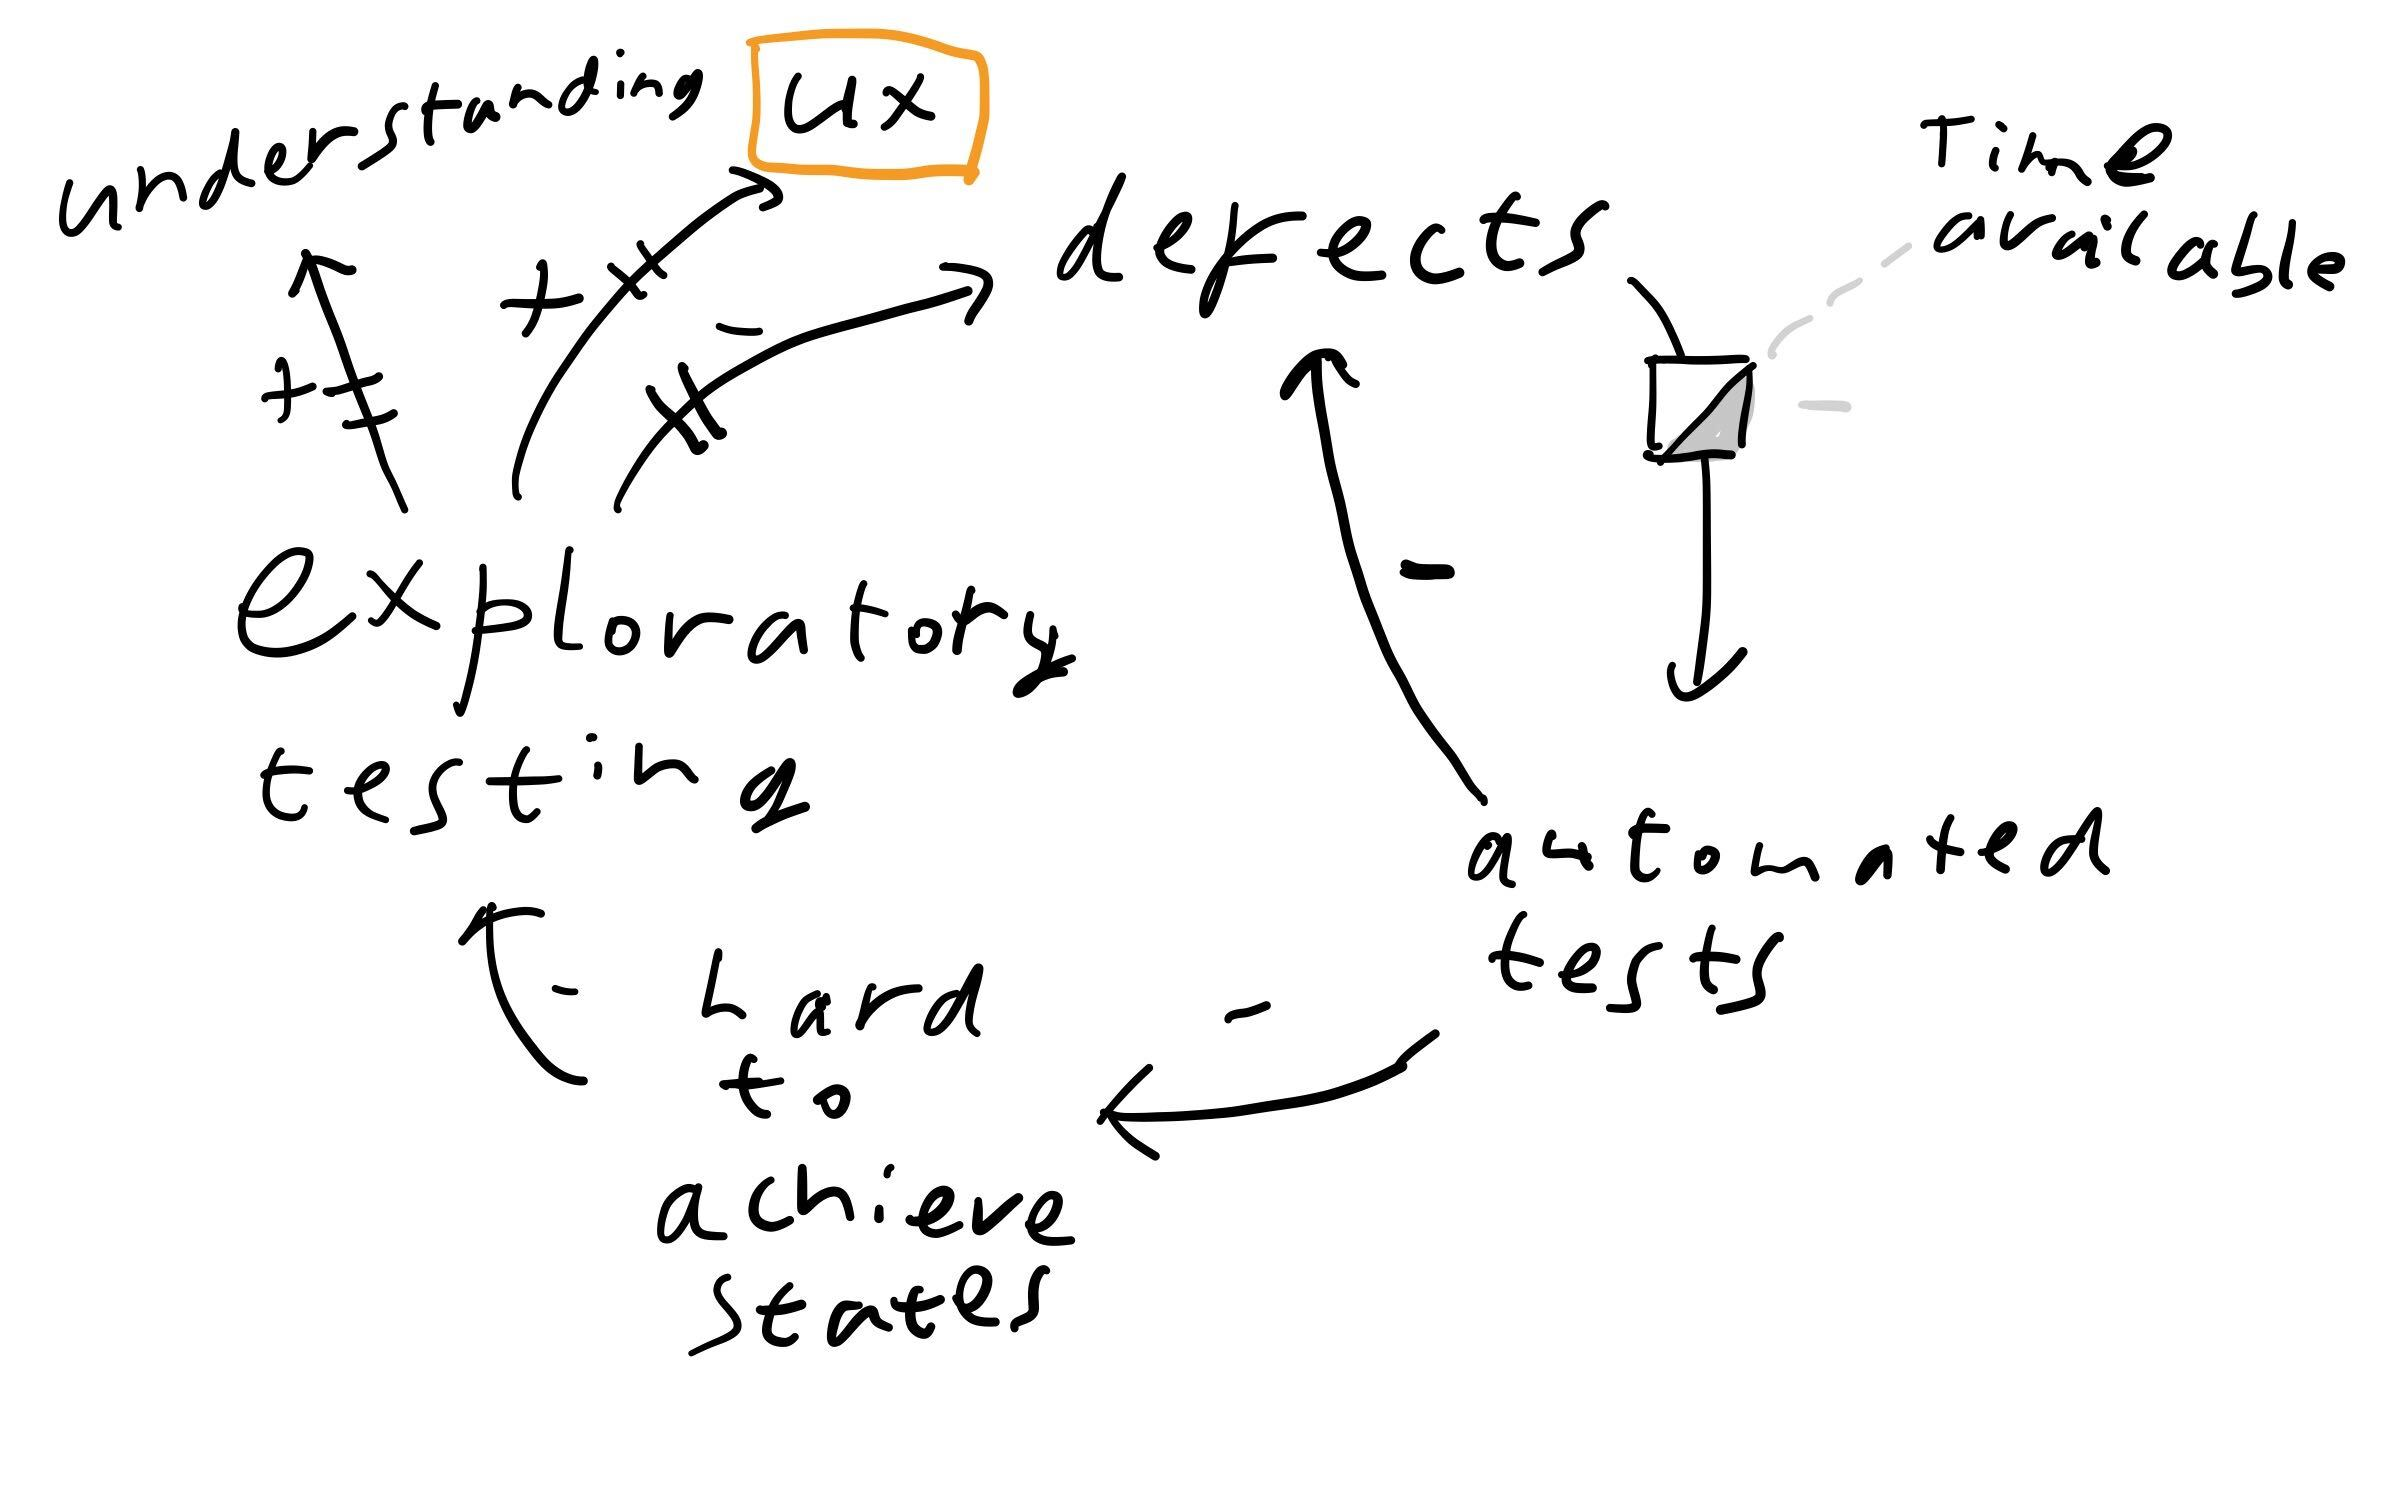 Diagram of effects, explained in words below.